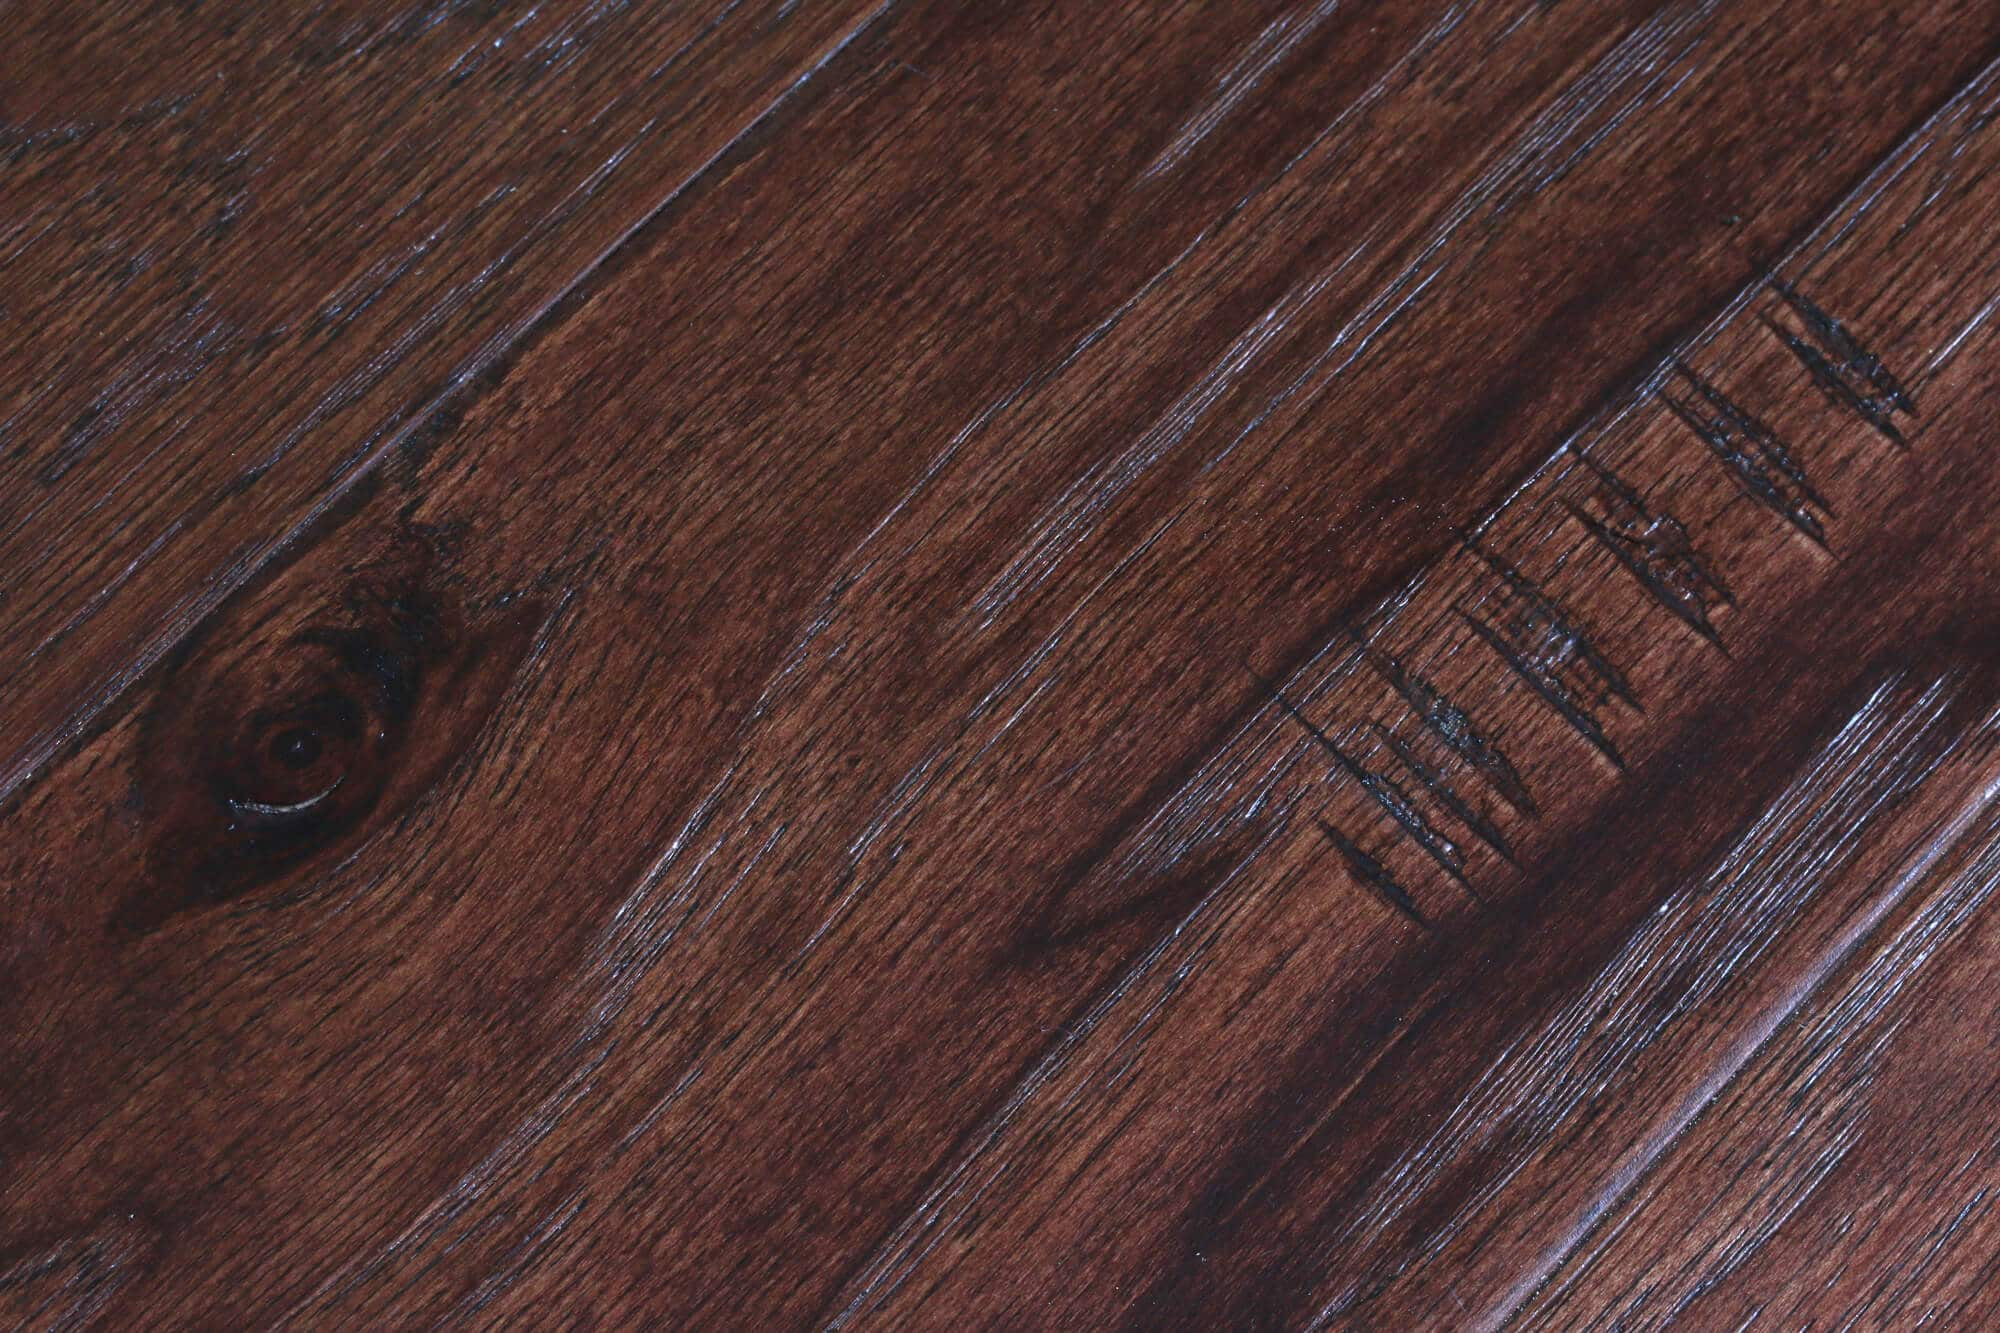 11 Fashionable Install Hardwood Floor 45 Degree Angle 2021 free download install hardwood floor 45 degree angle of the micro dwelling project part 5 flooring the daring gourmet for 37